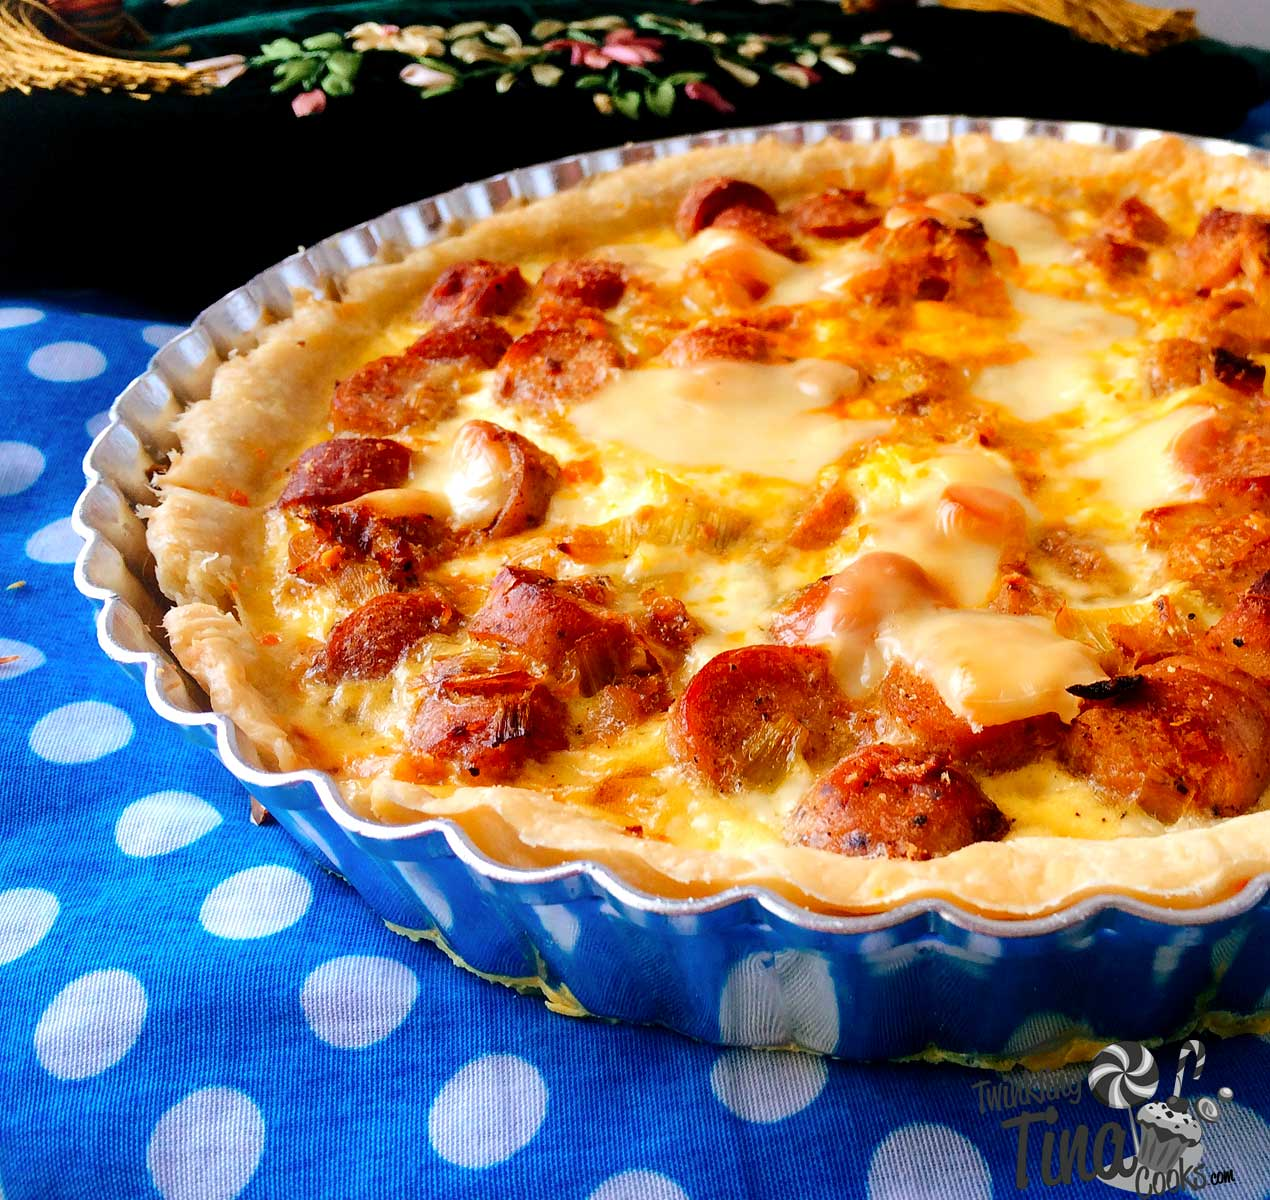 Leek-and-sausage-quiche-recipe-soft-crust-pastry-recipe-quiche-recipe-how-to-make-a-quiche-2